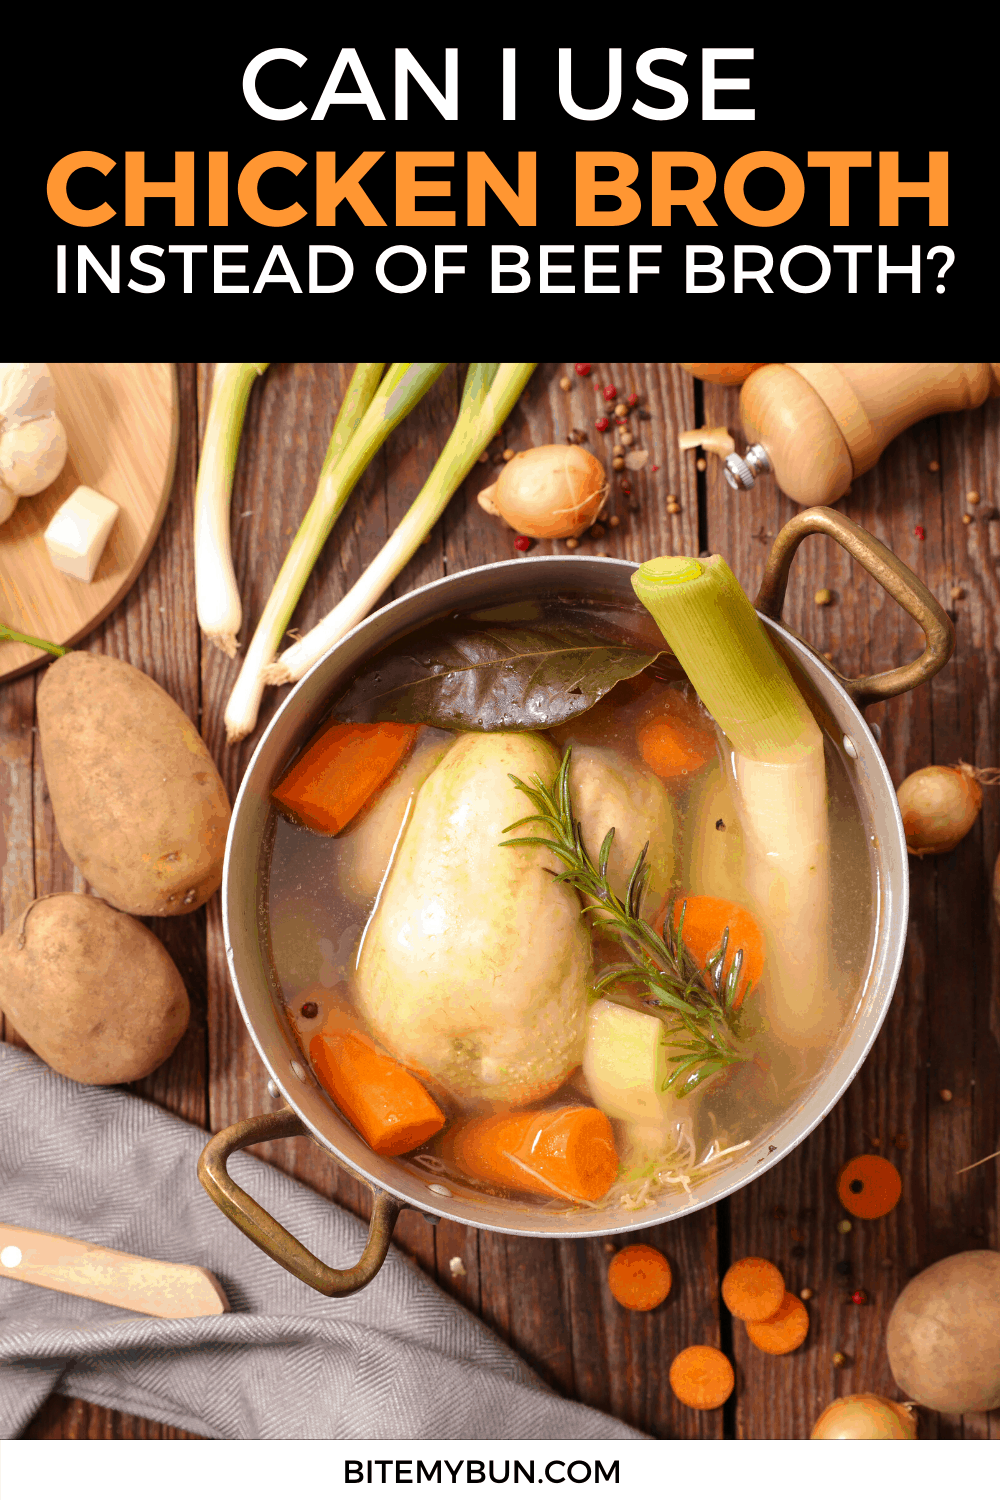 Chicken and Beef Broth uses